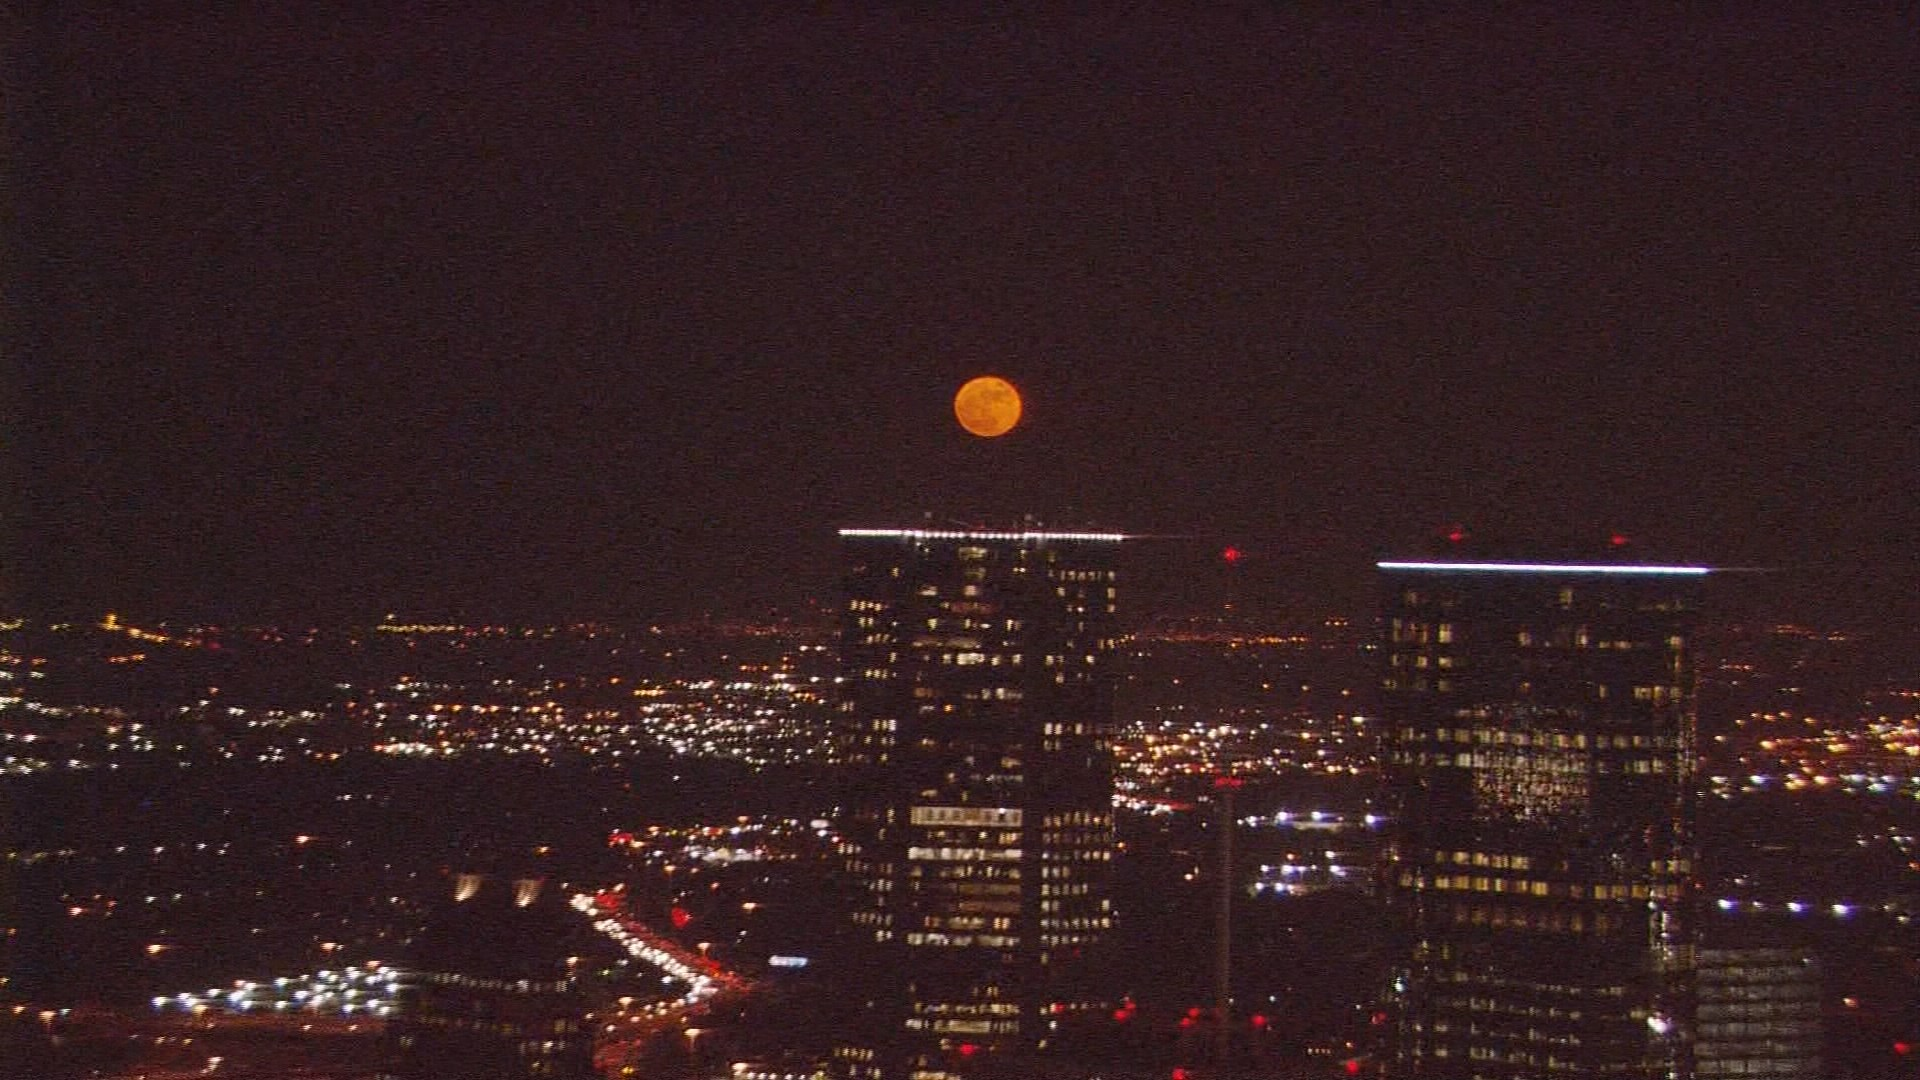 Final supermoon of 2020 to rise Wednesday night